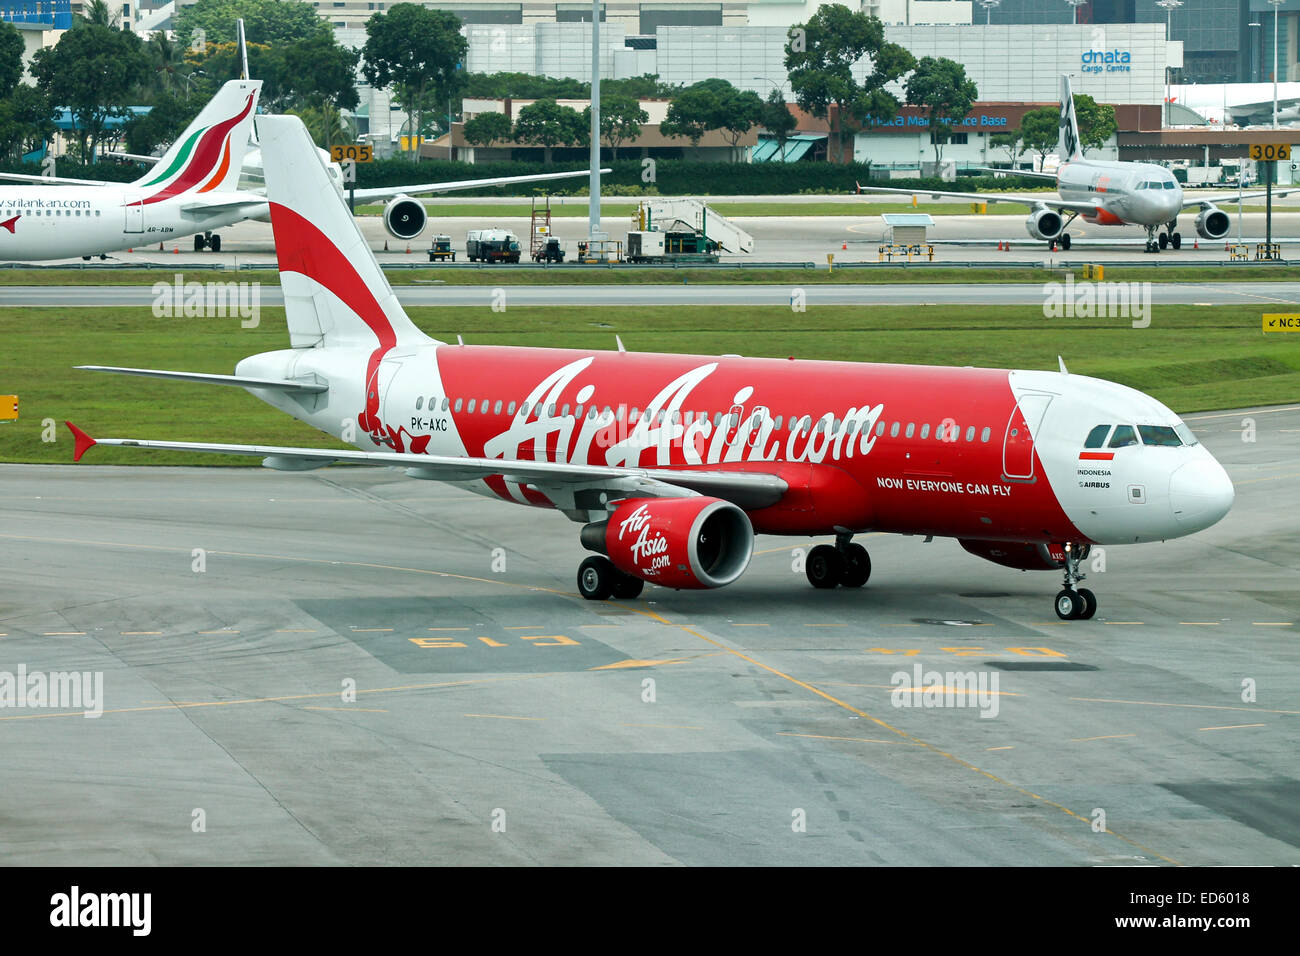 FILE PIC: Singapore Changi Airport, Singapore. 21st February, 2012. Indonesia AirAsia Airbus A320, registration Stock Photo